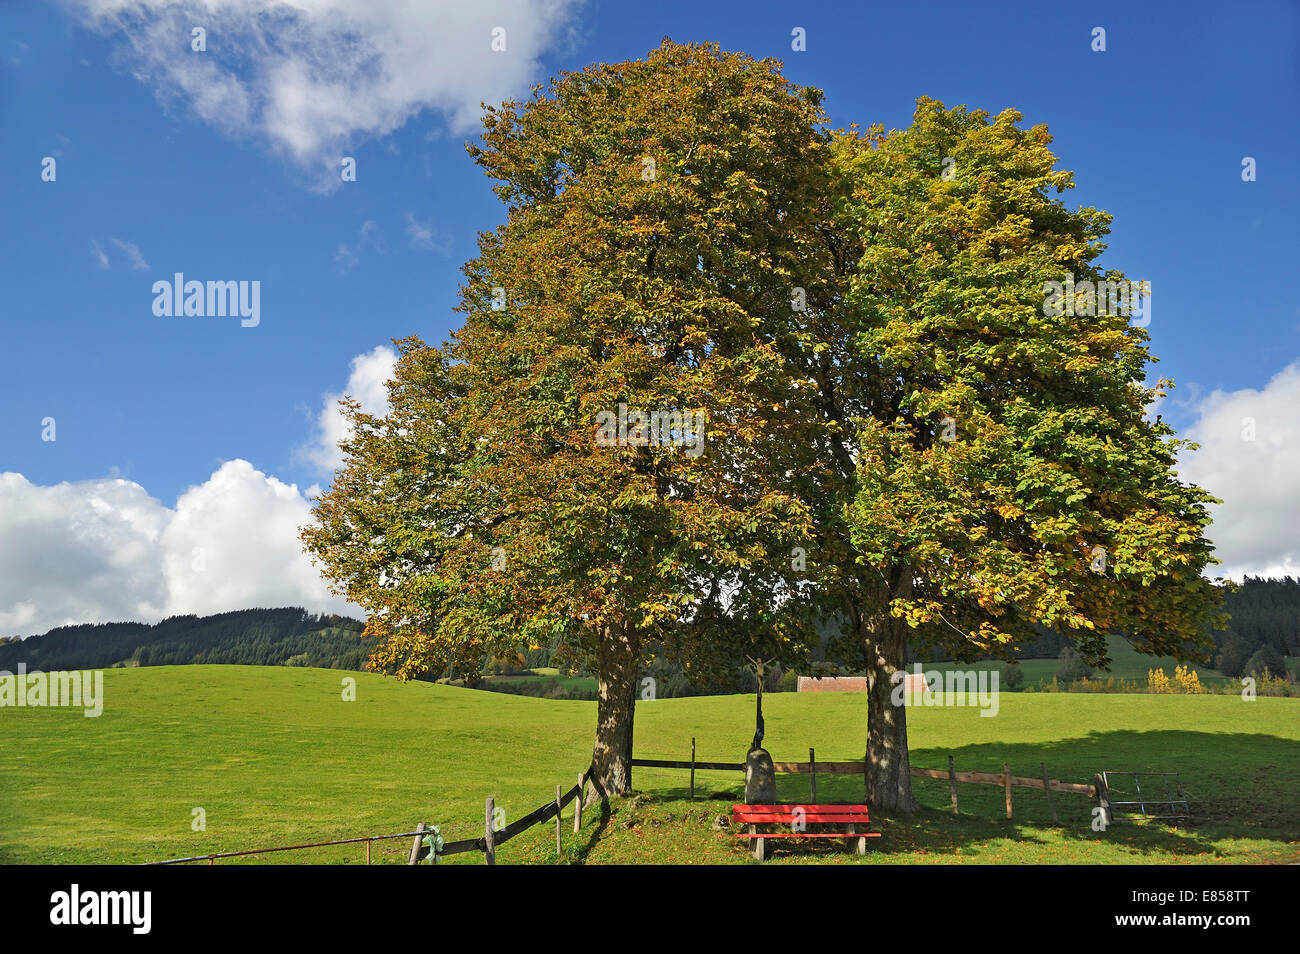 Two Large-leaved Lindens or Large-leaved Limes (Tilia platyphyllos) with autumn foliage, with a crucifix and a red Stock Photo